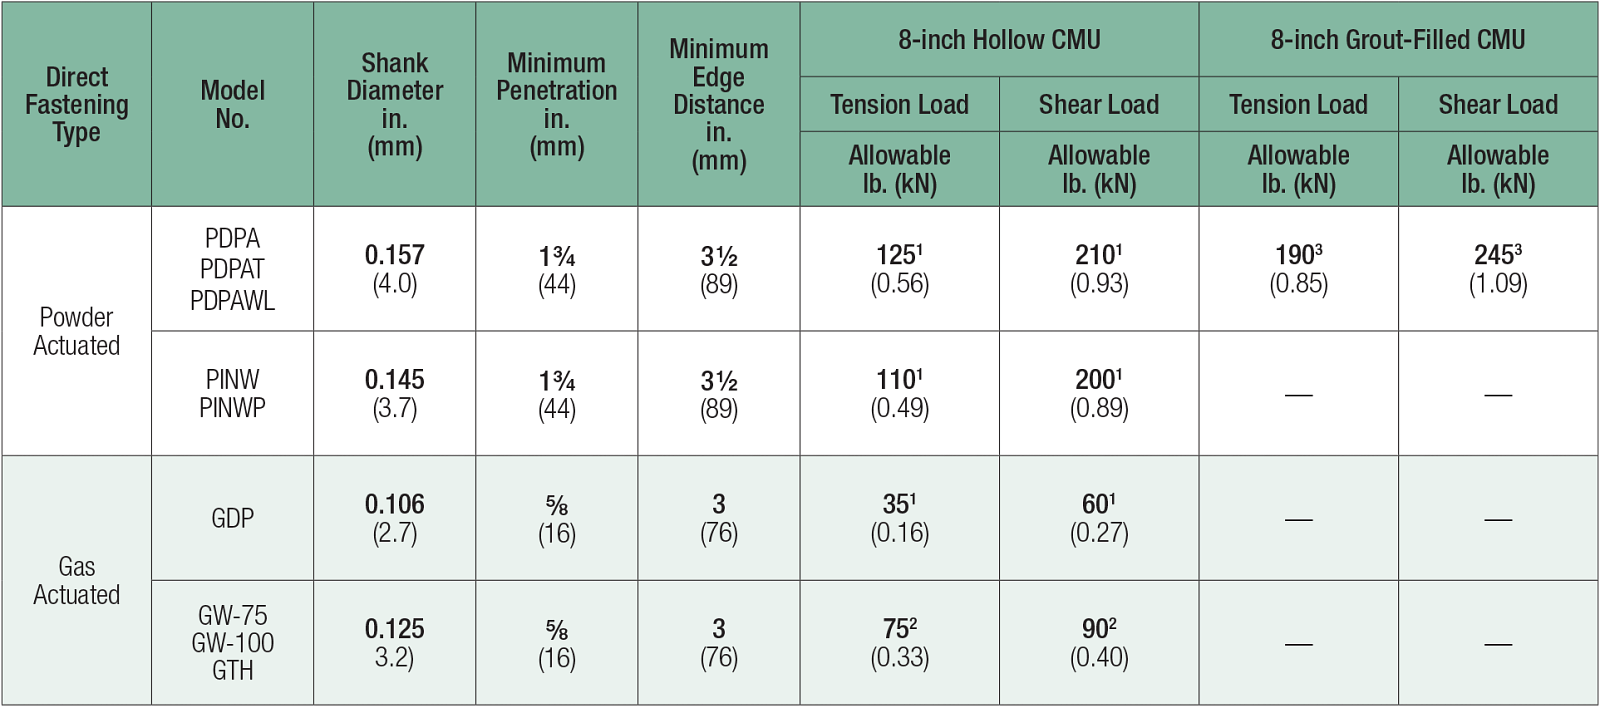 Table: Powder-Actuated and Gas-Actuated Fasteners — Allowable Tension and Shear Loads in Hollow and Grout-Filled CMU